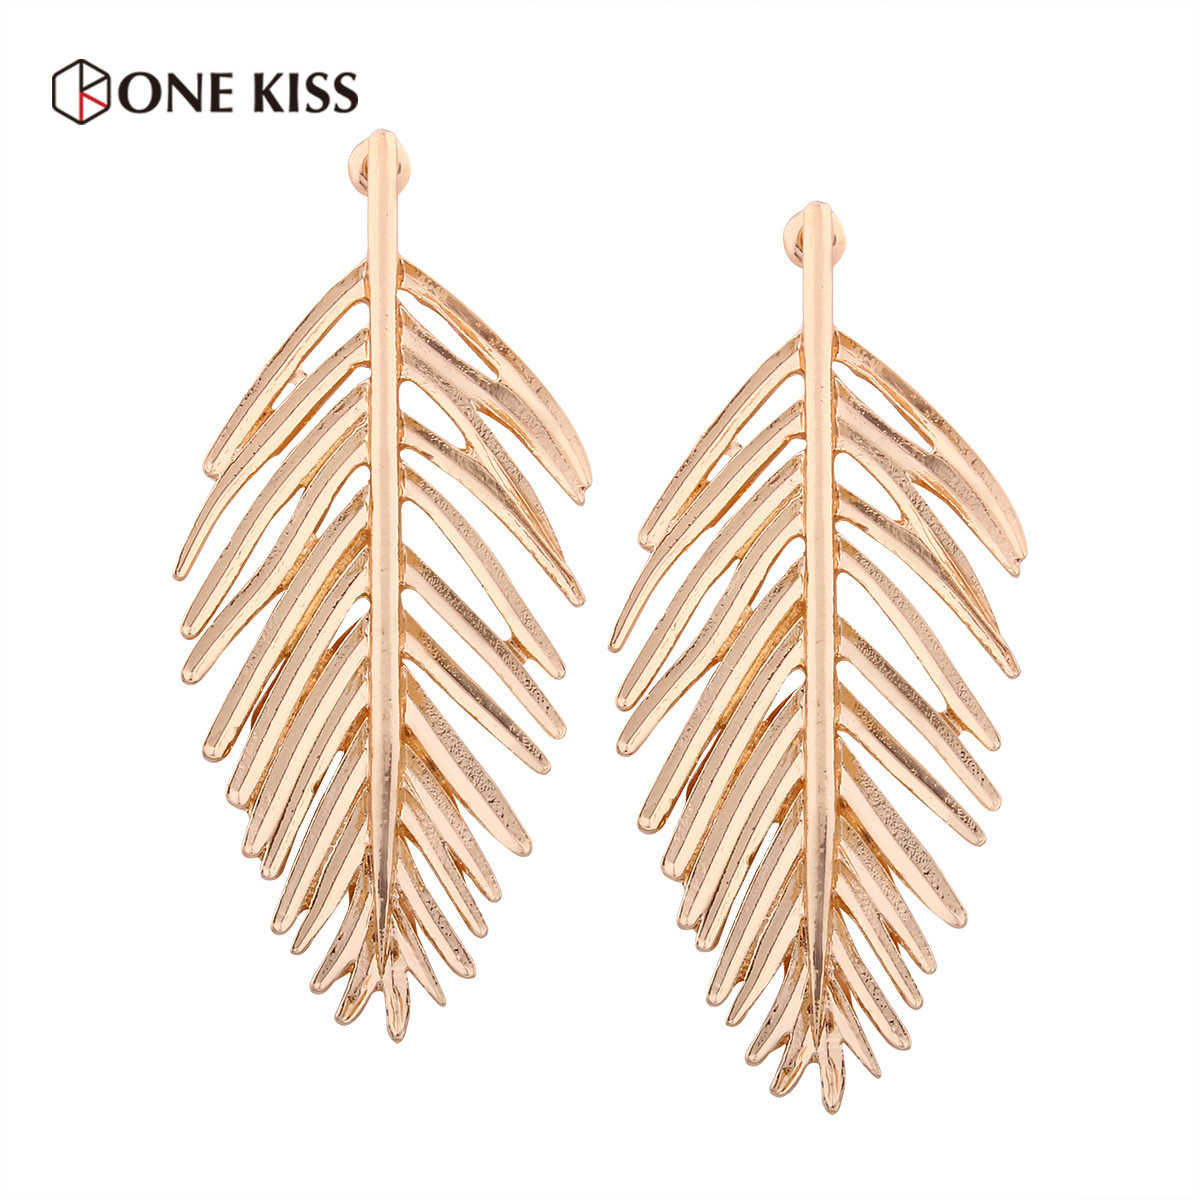 2019 New Design Metal Gold Leaf Earrings for Women Trendy Statement Big Dangle Drop Long Earrings ZA Pendientes Jewelry Gift